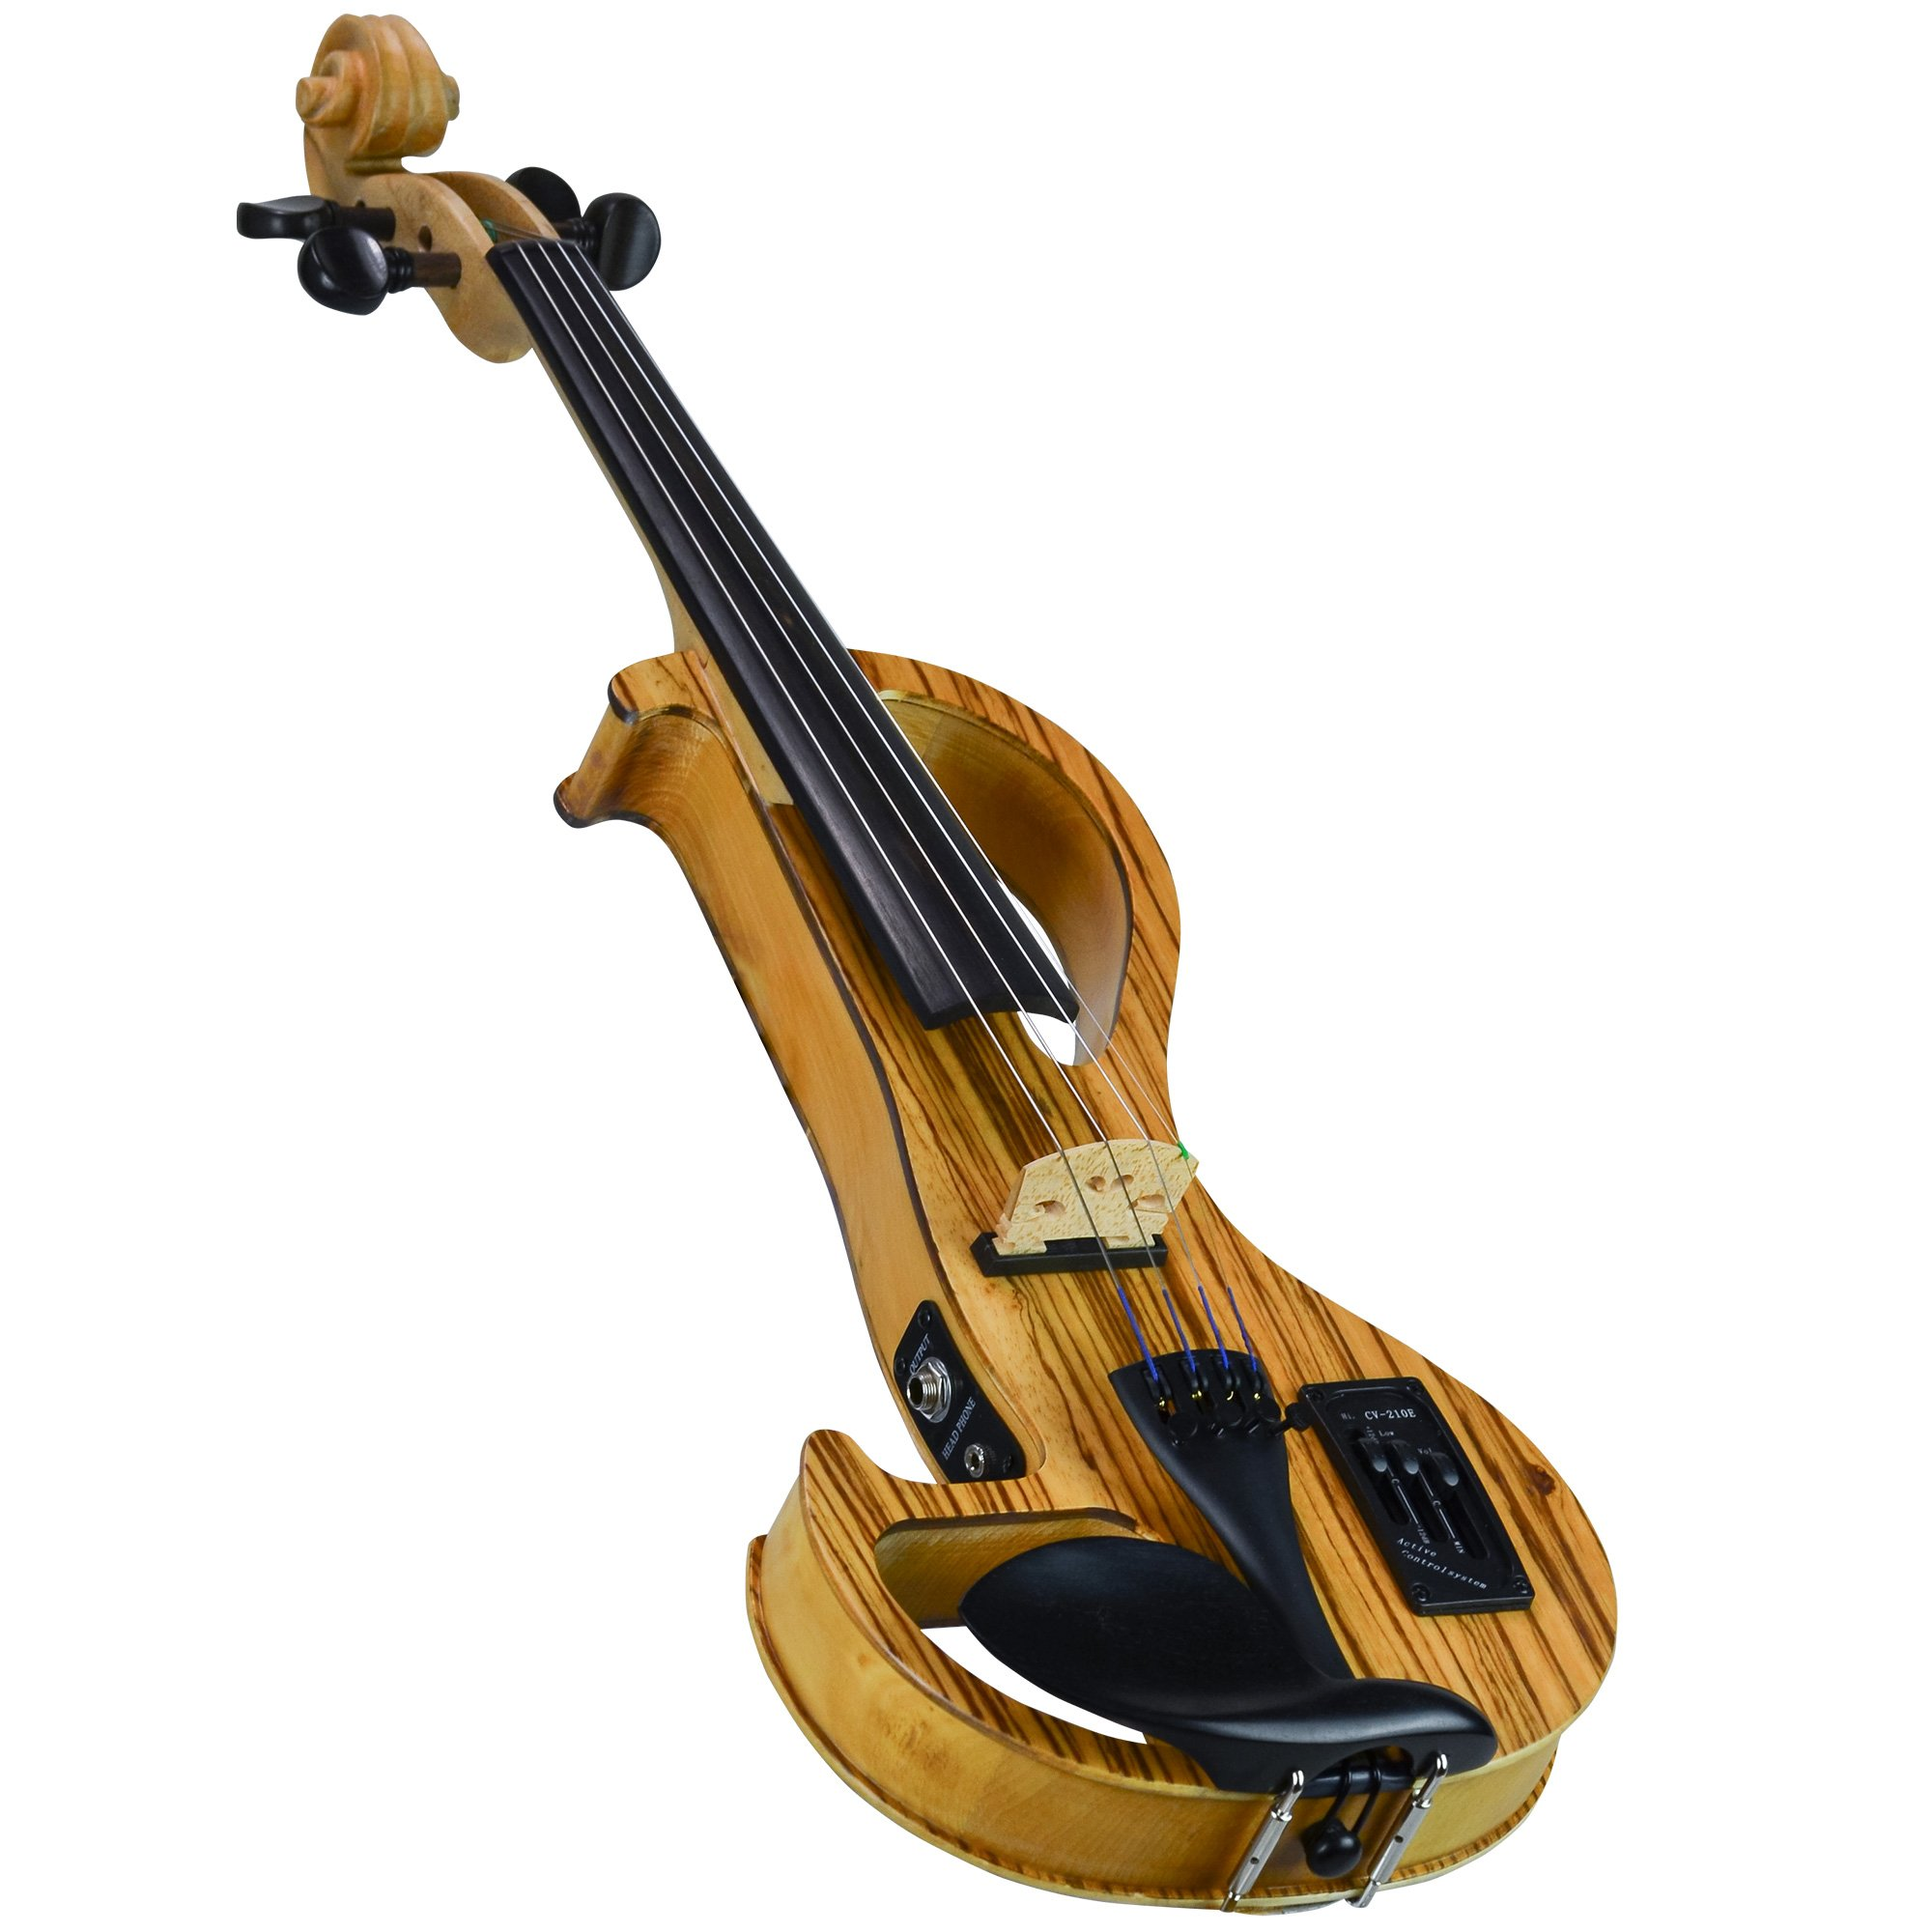 CLEARANCE Bunnel Edge Zebrano Electric Violin Outfit in action